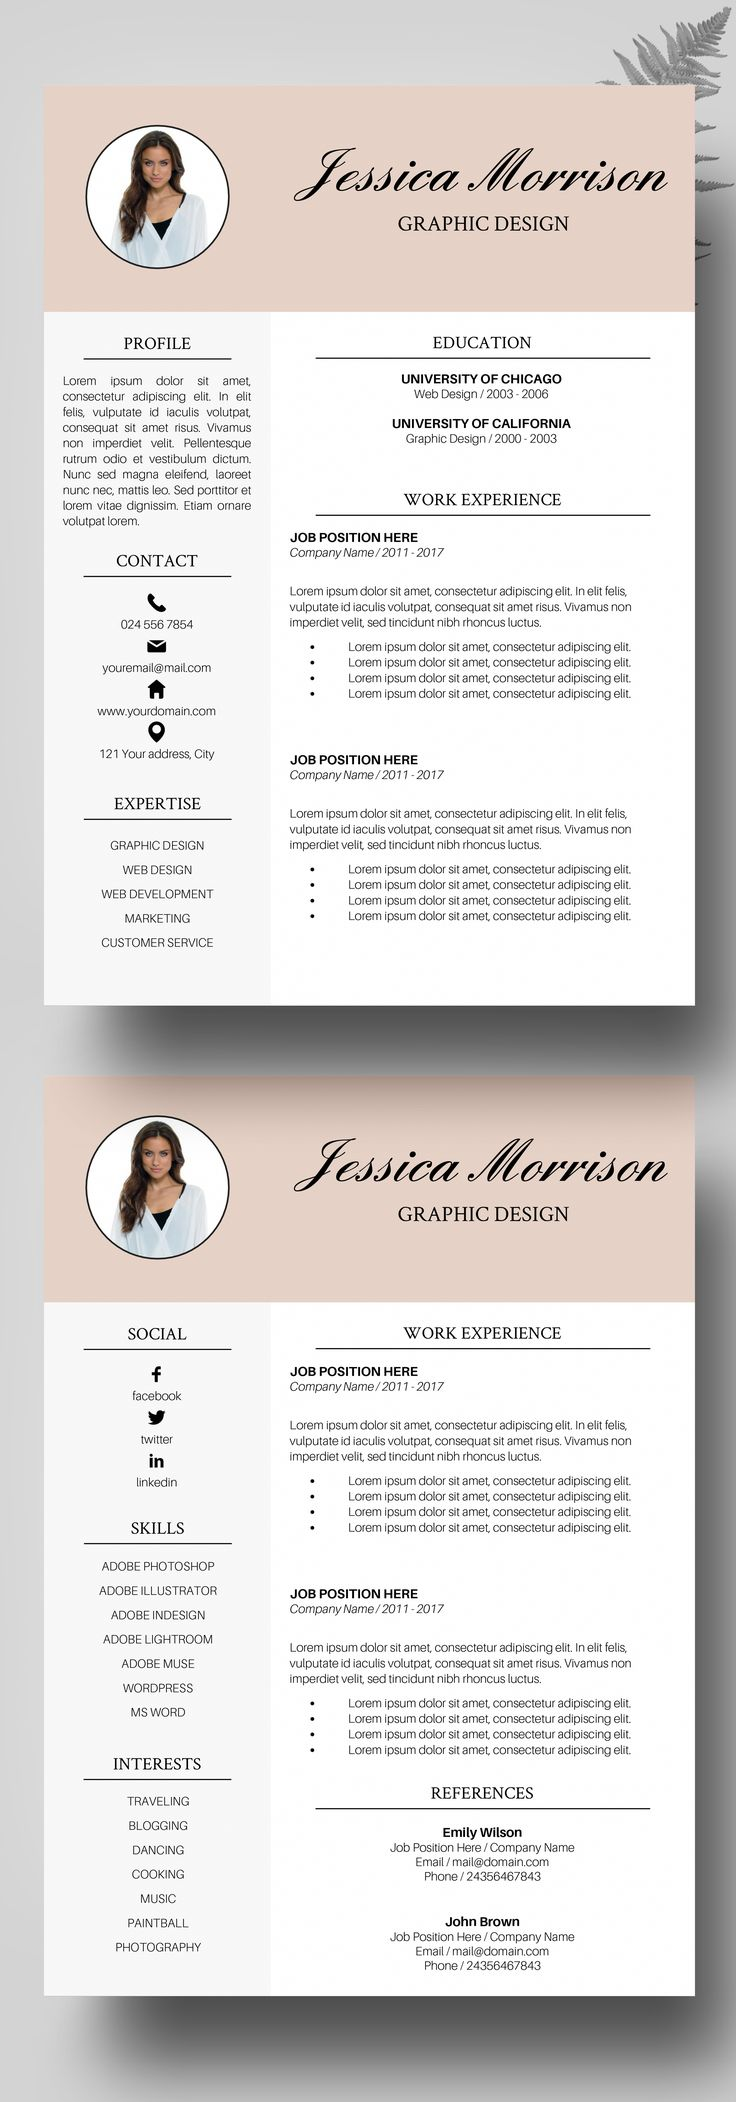 Best 25 free creative resume templates ideas on pinterest best 25 free creative resume templates ideas on pinterest creative cv template free creative cv template and cv template yelopaper Images